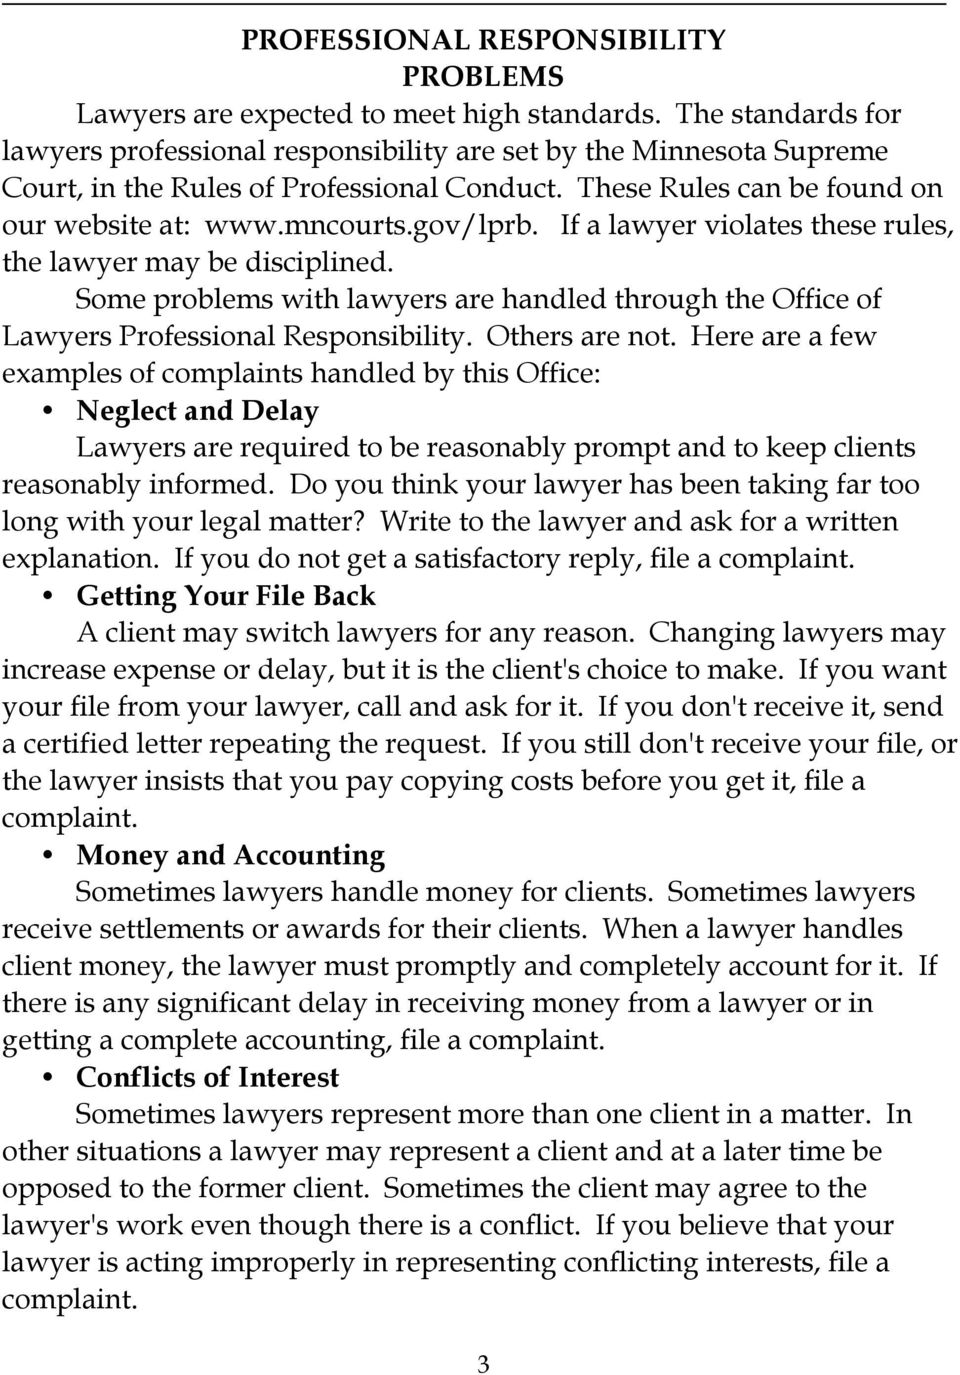 If a lawyer violates these rules, the lawyer may be disciplined. Some problems with lawyers are handled through the Office of Lawyers Professional Responsibility. Others are not.